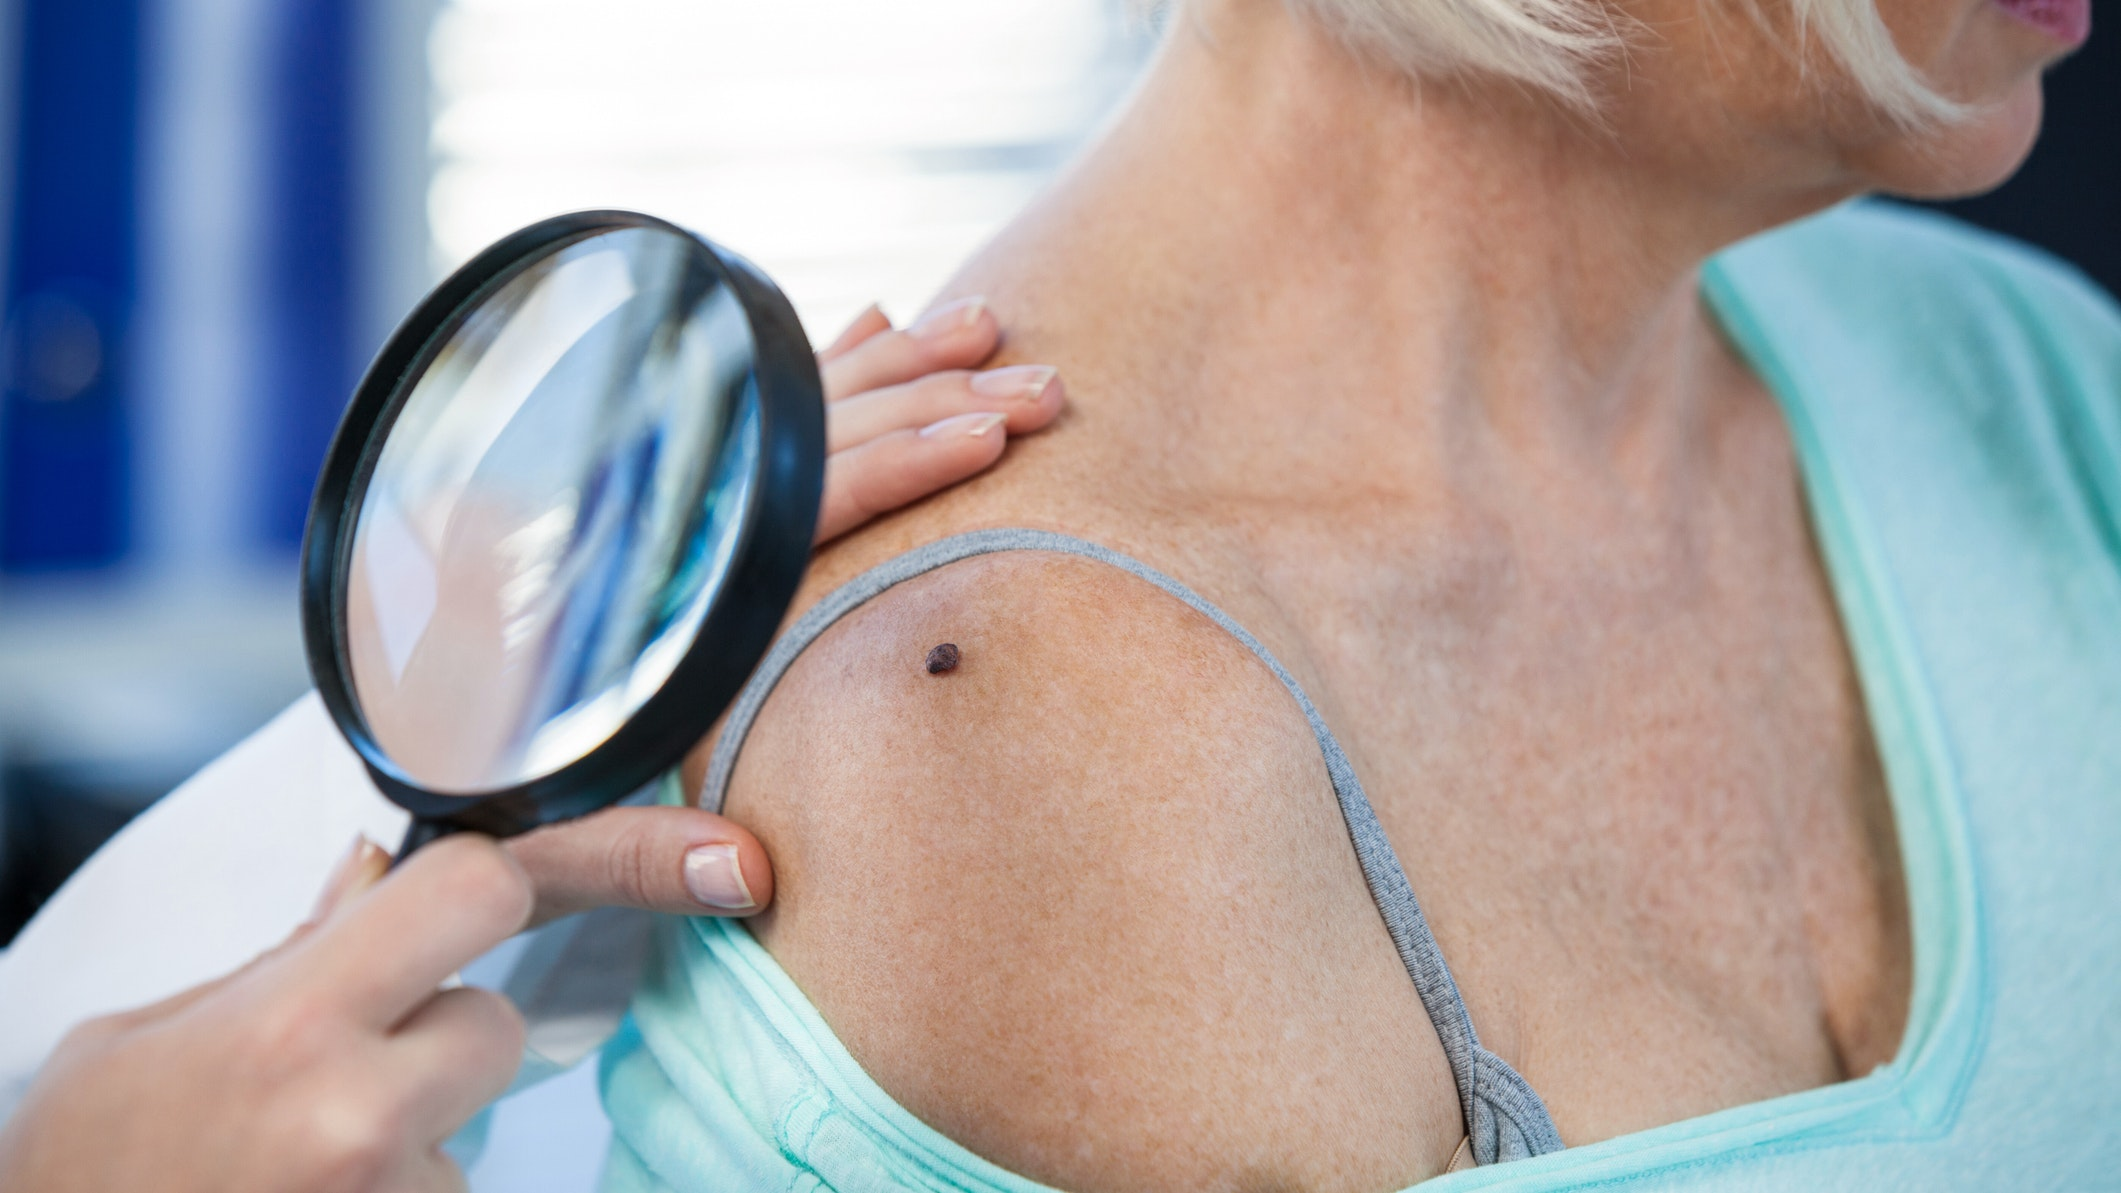 Do You Know The Skin Cancer Warning Signs